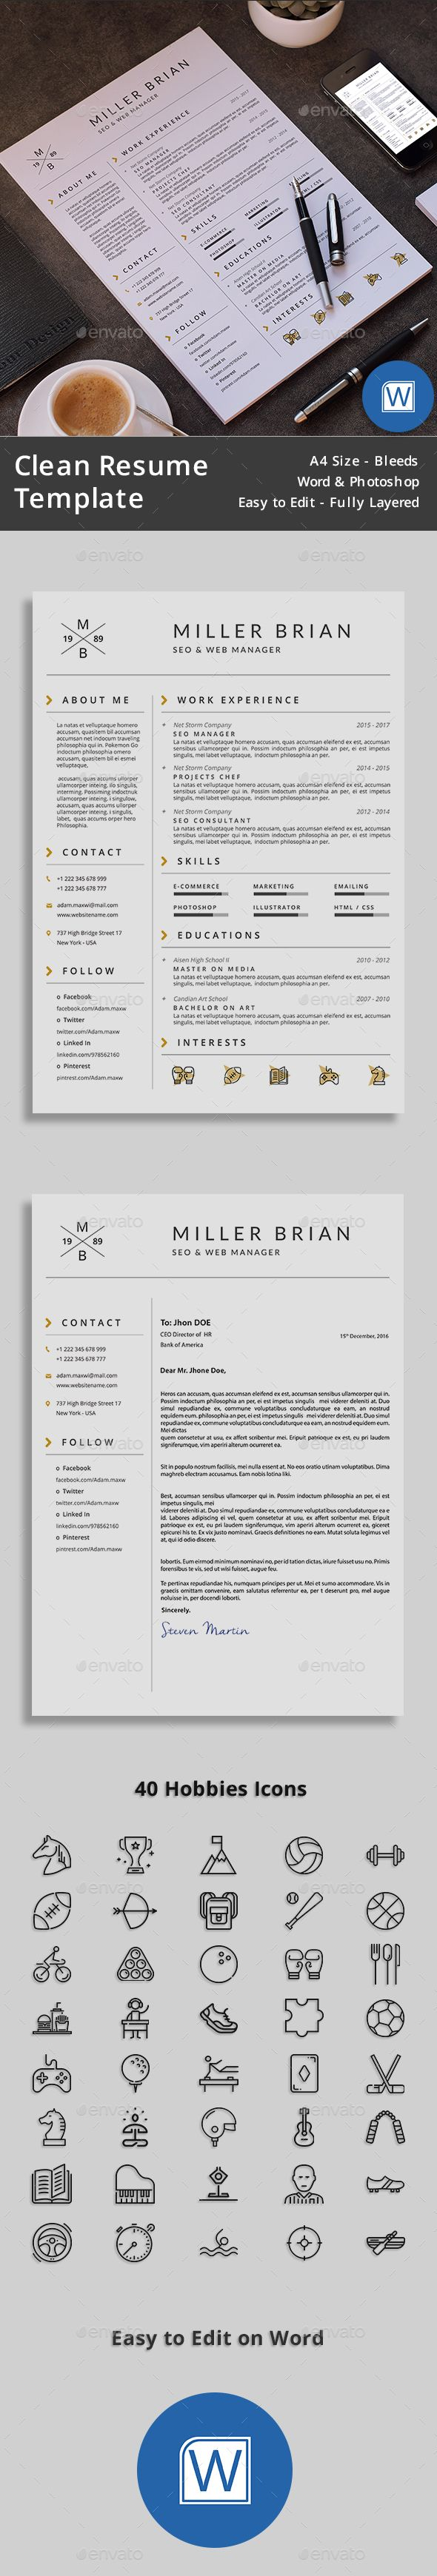 143 best Graphic Design Portfolio and Resume